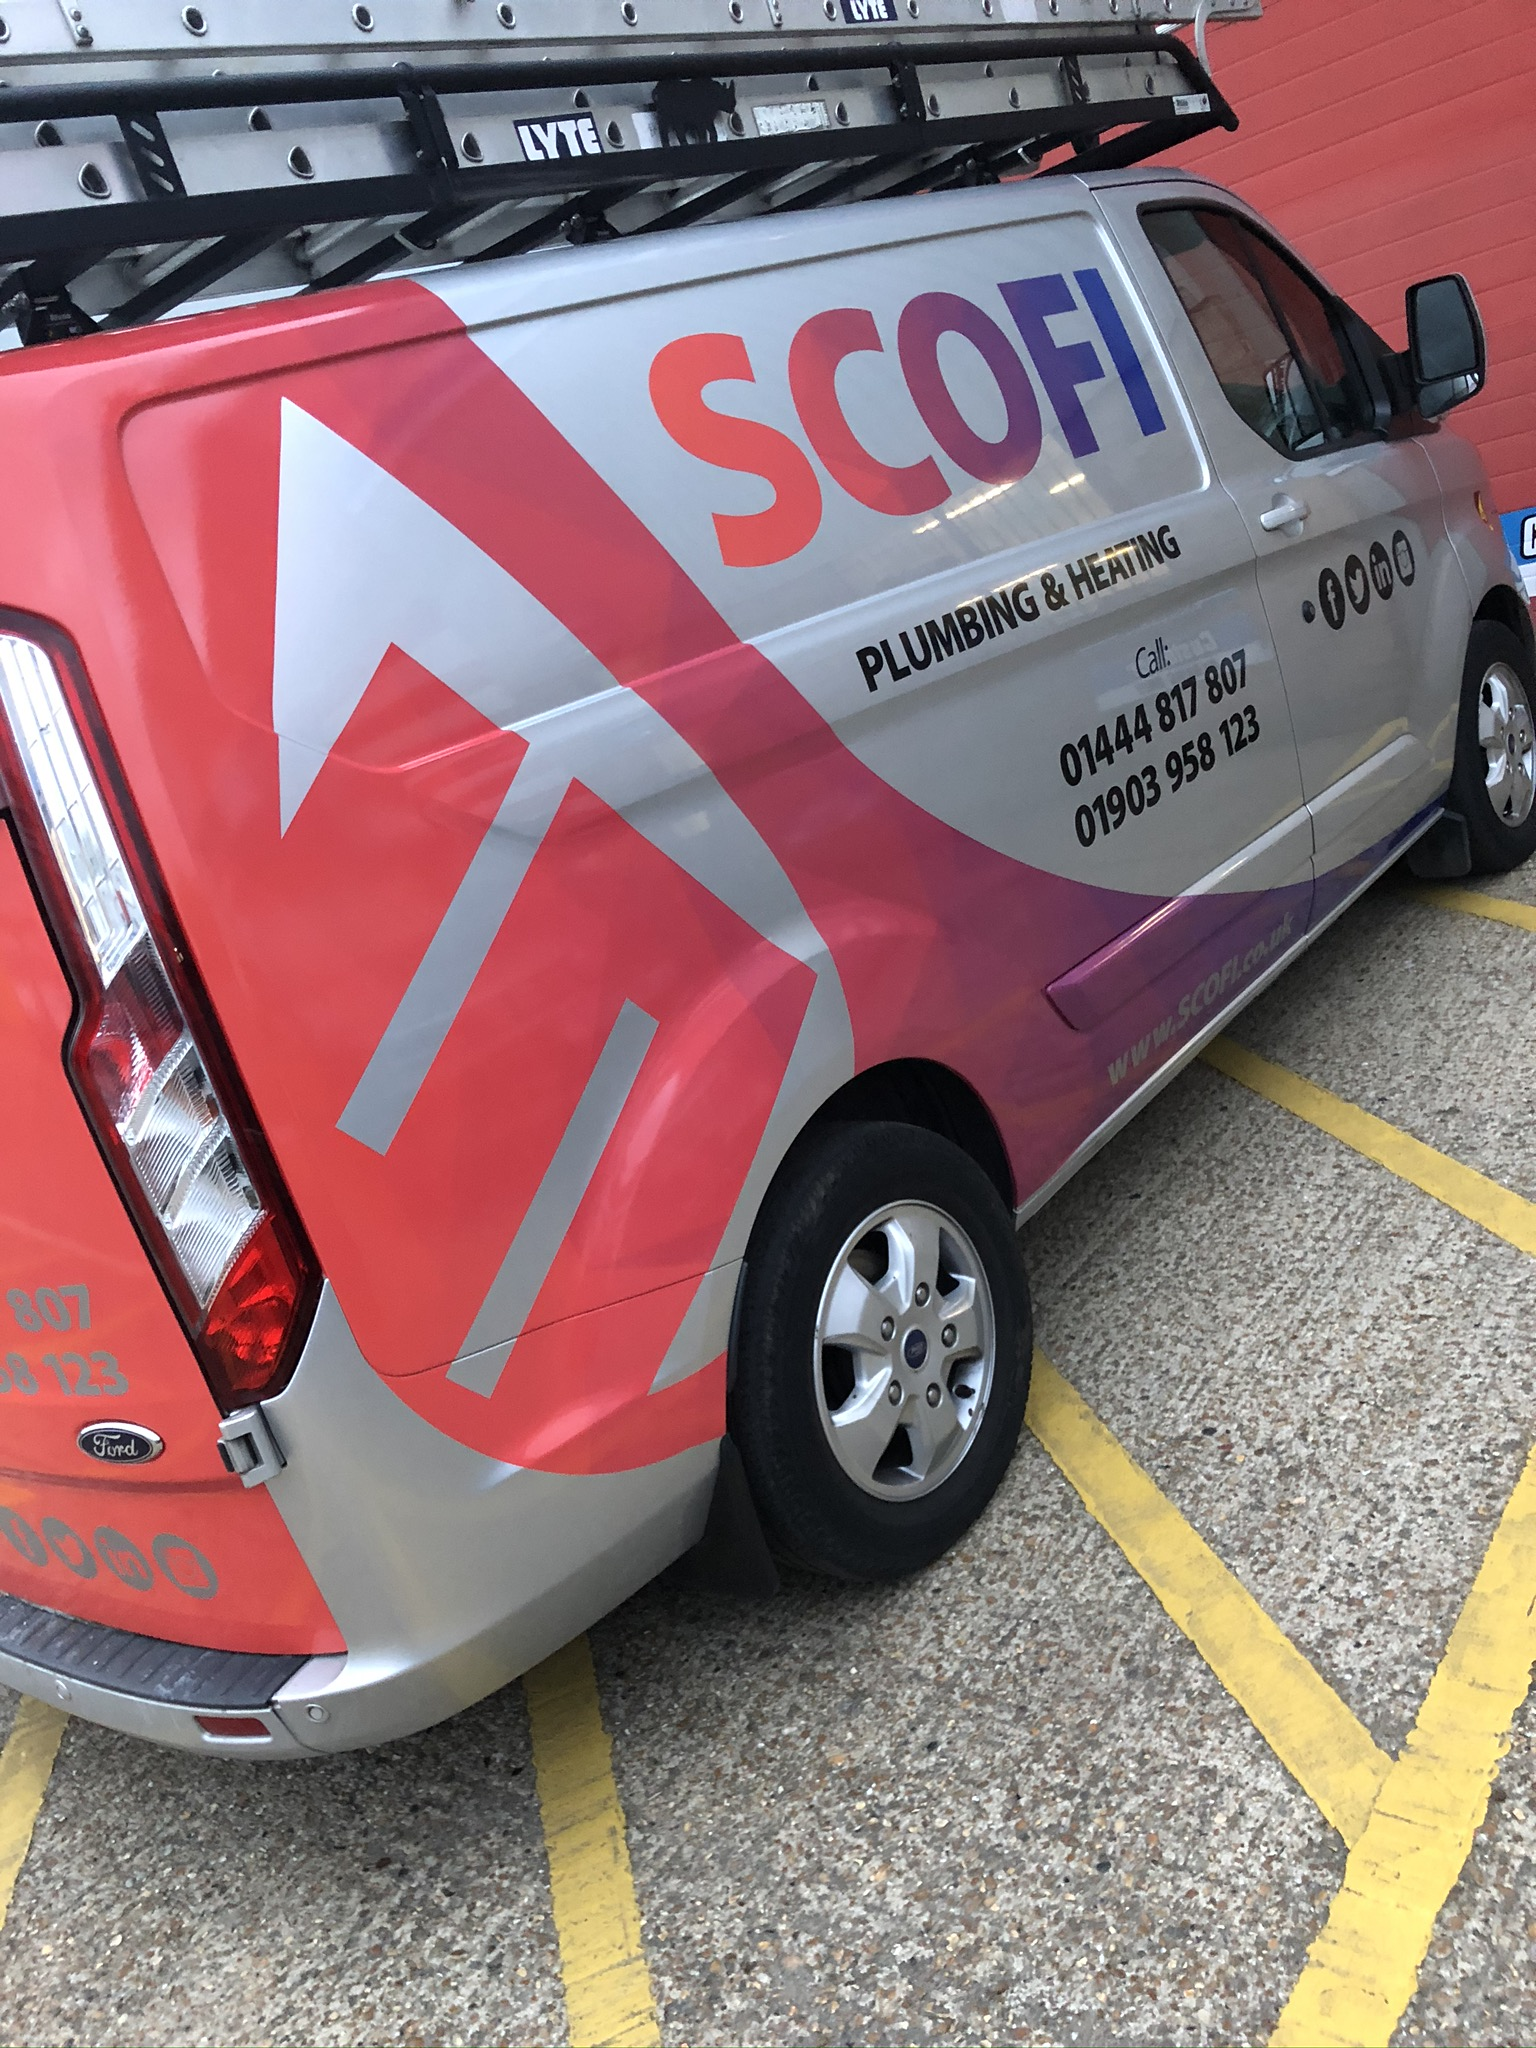 SCOFI PLUMBING & HEATING